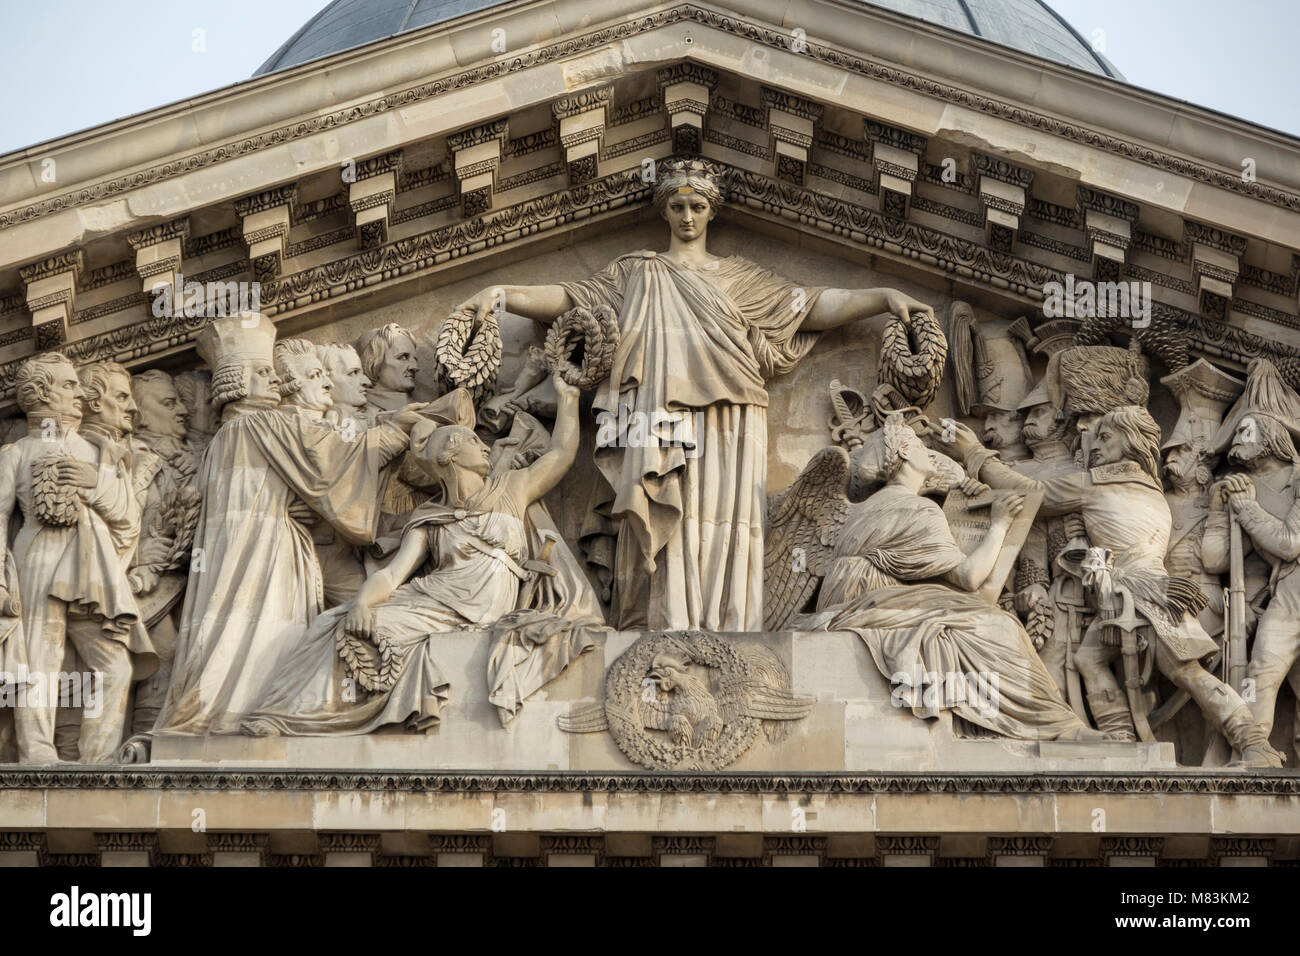 entrance and pediment of the Pantheon, Paris, France - Stock Image